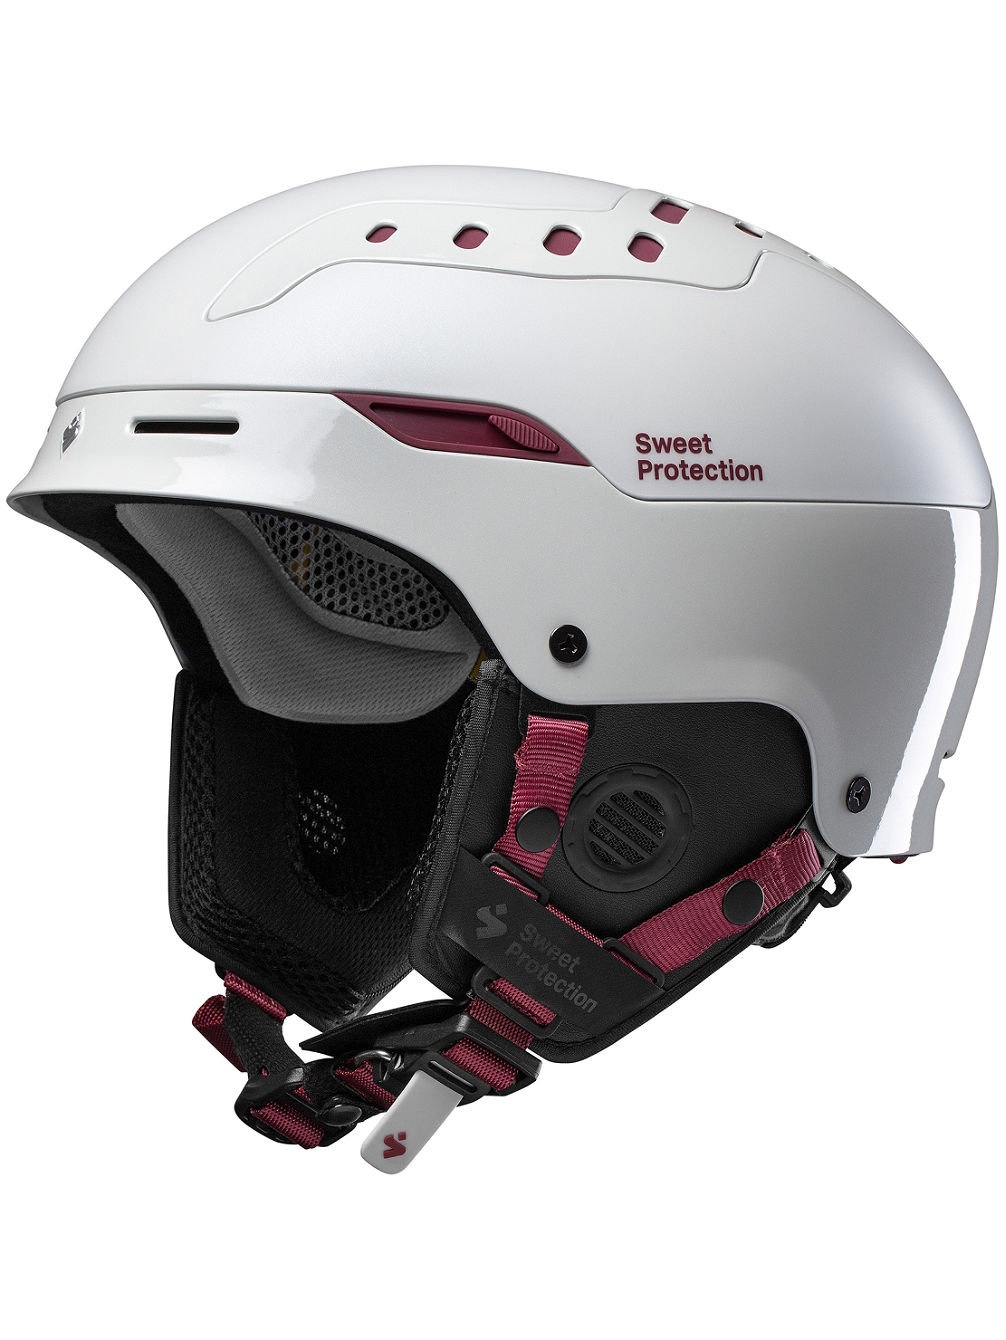 Switcher Helm